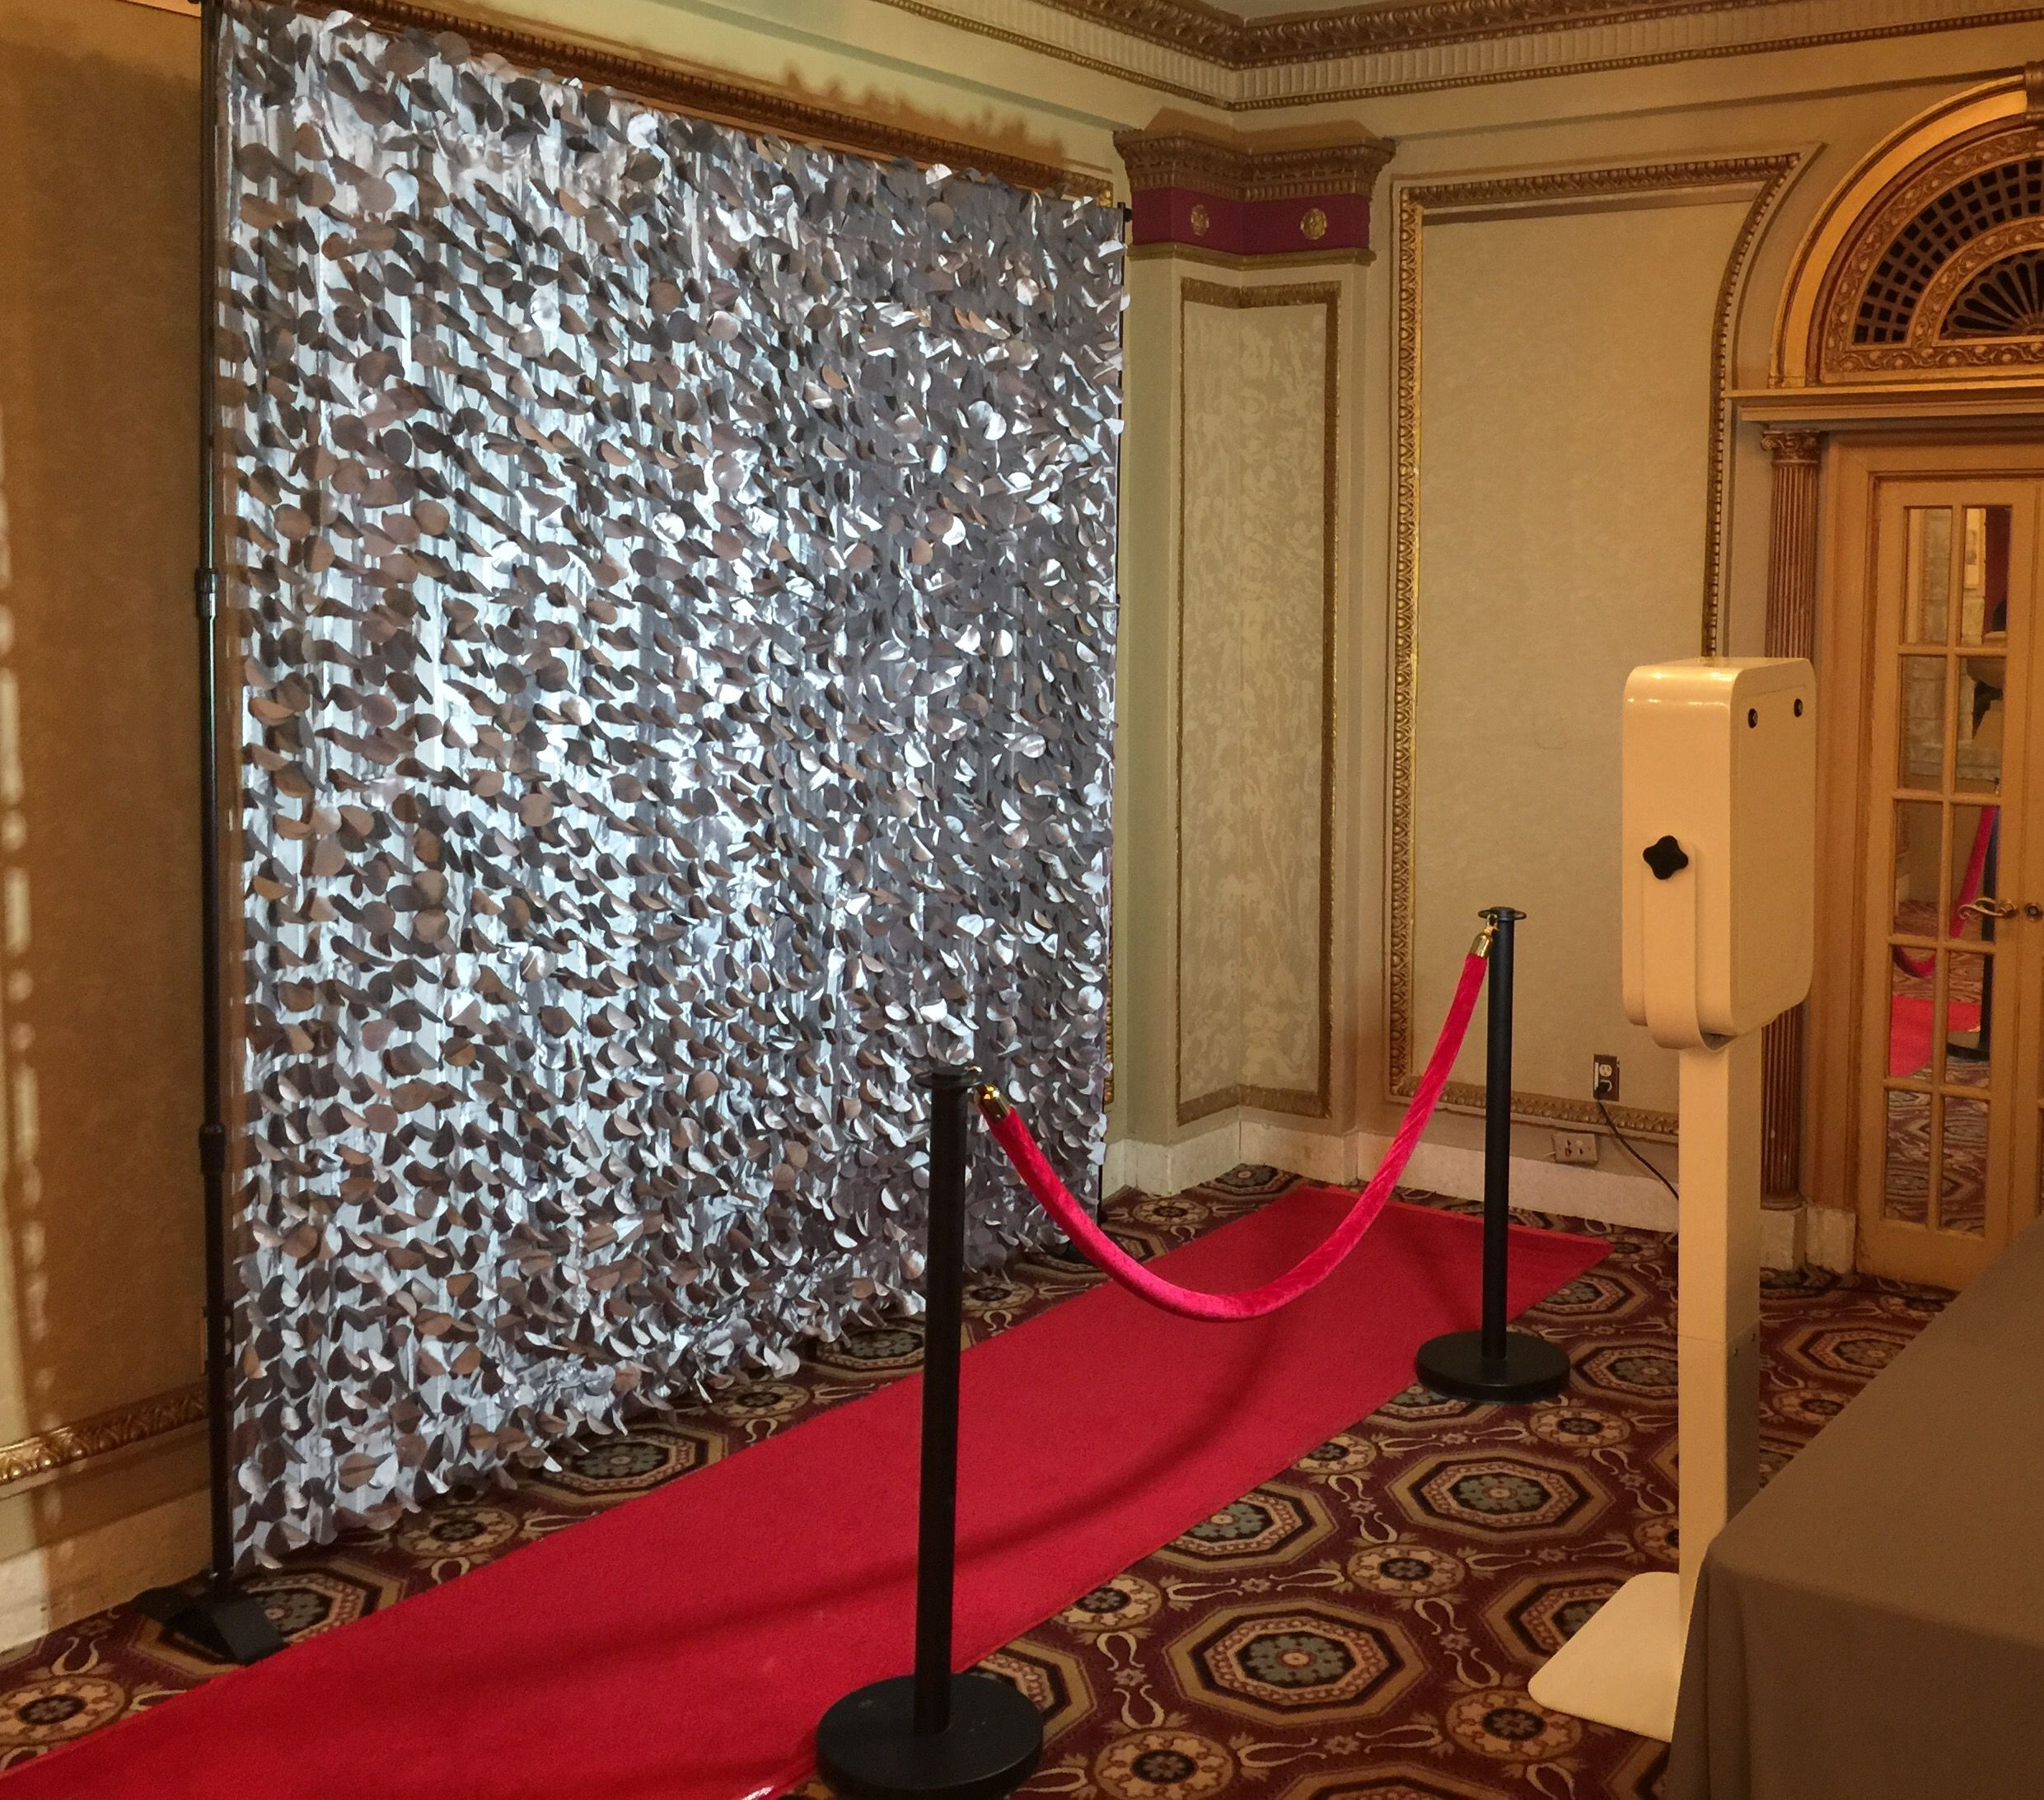 Photo Booth Of The Stars Open Photo Booth Kiosk Red Carpet